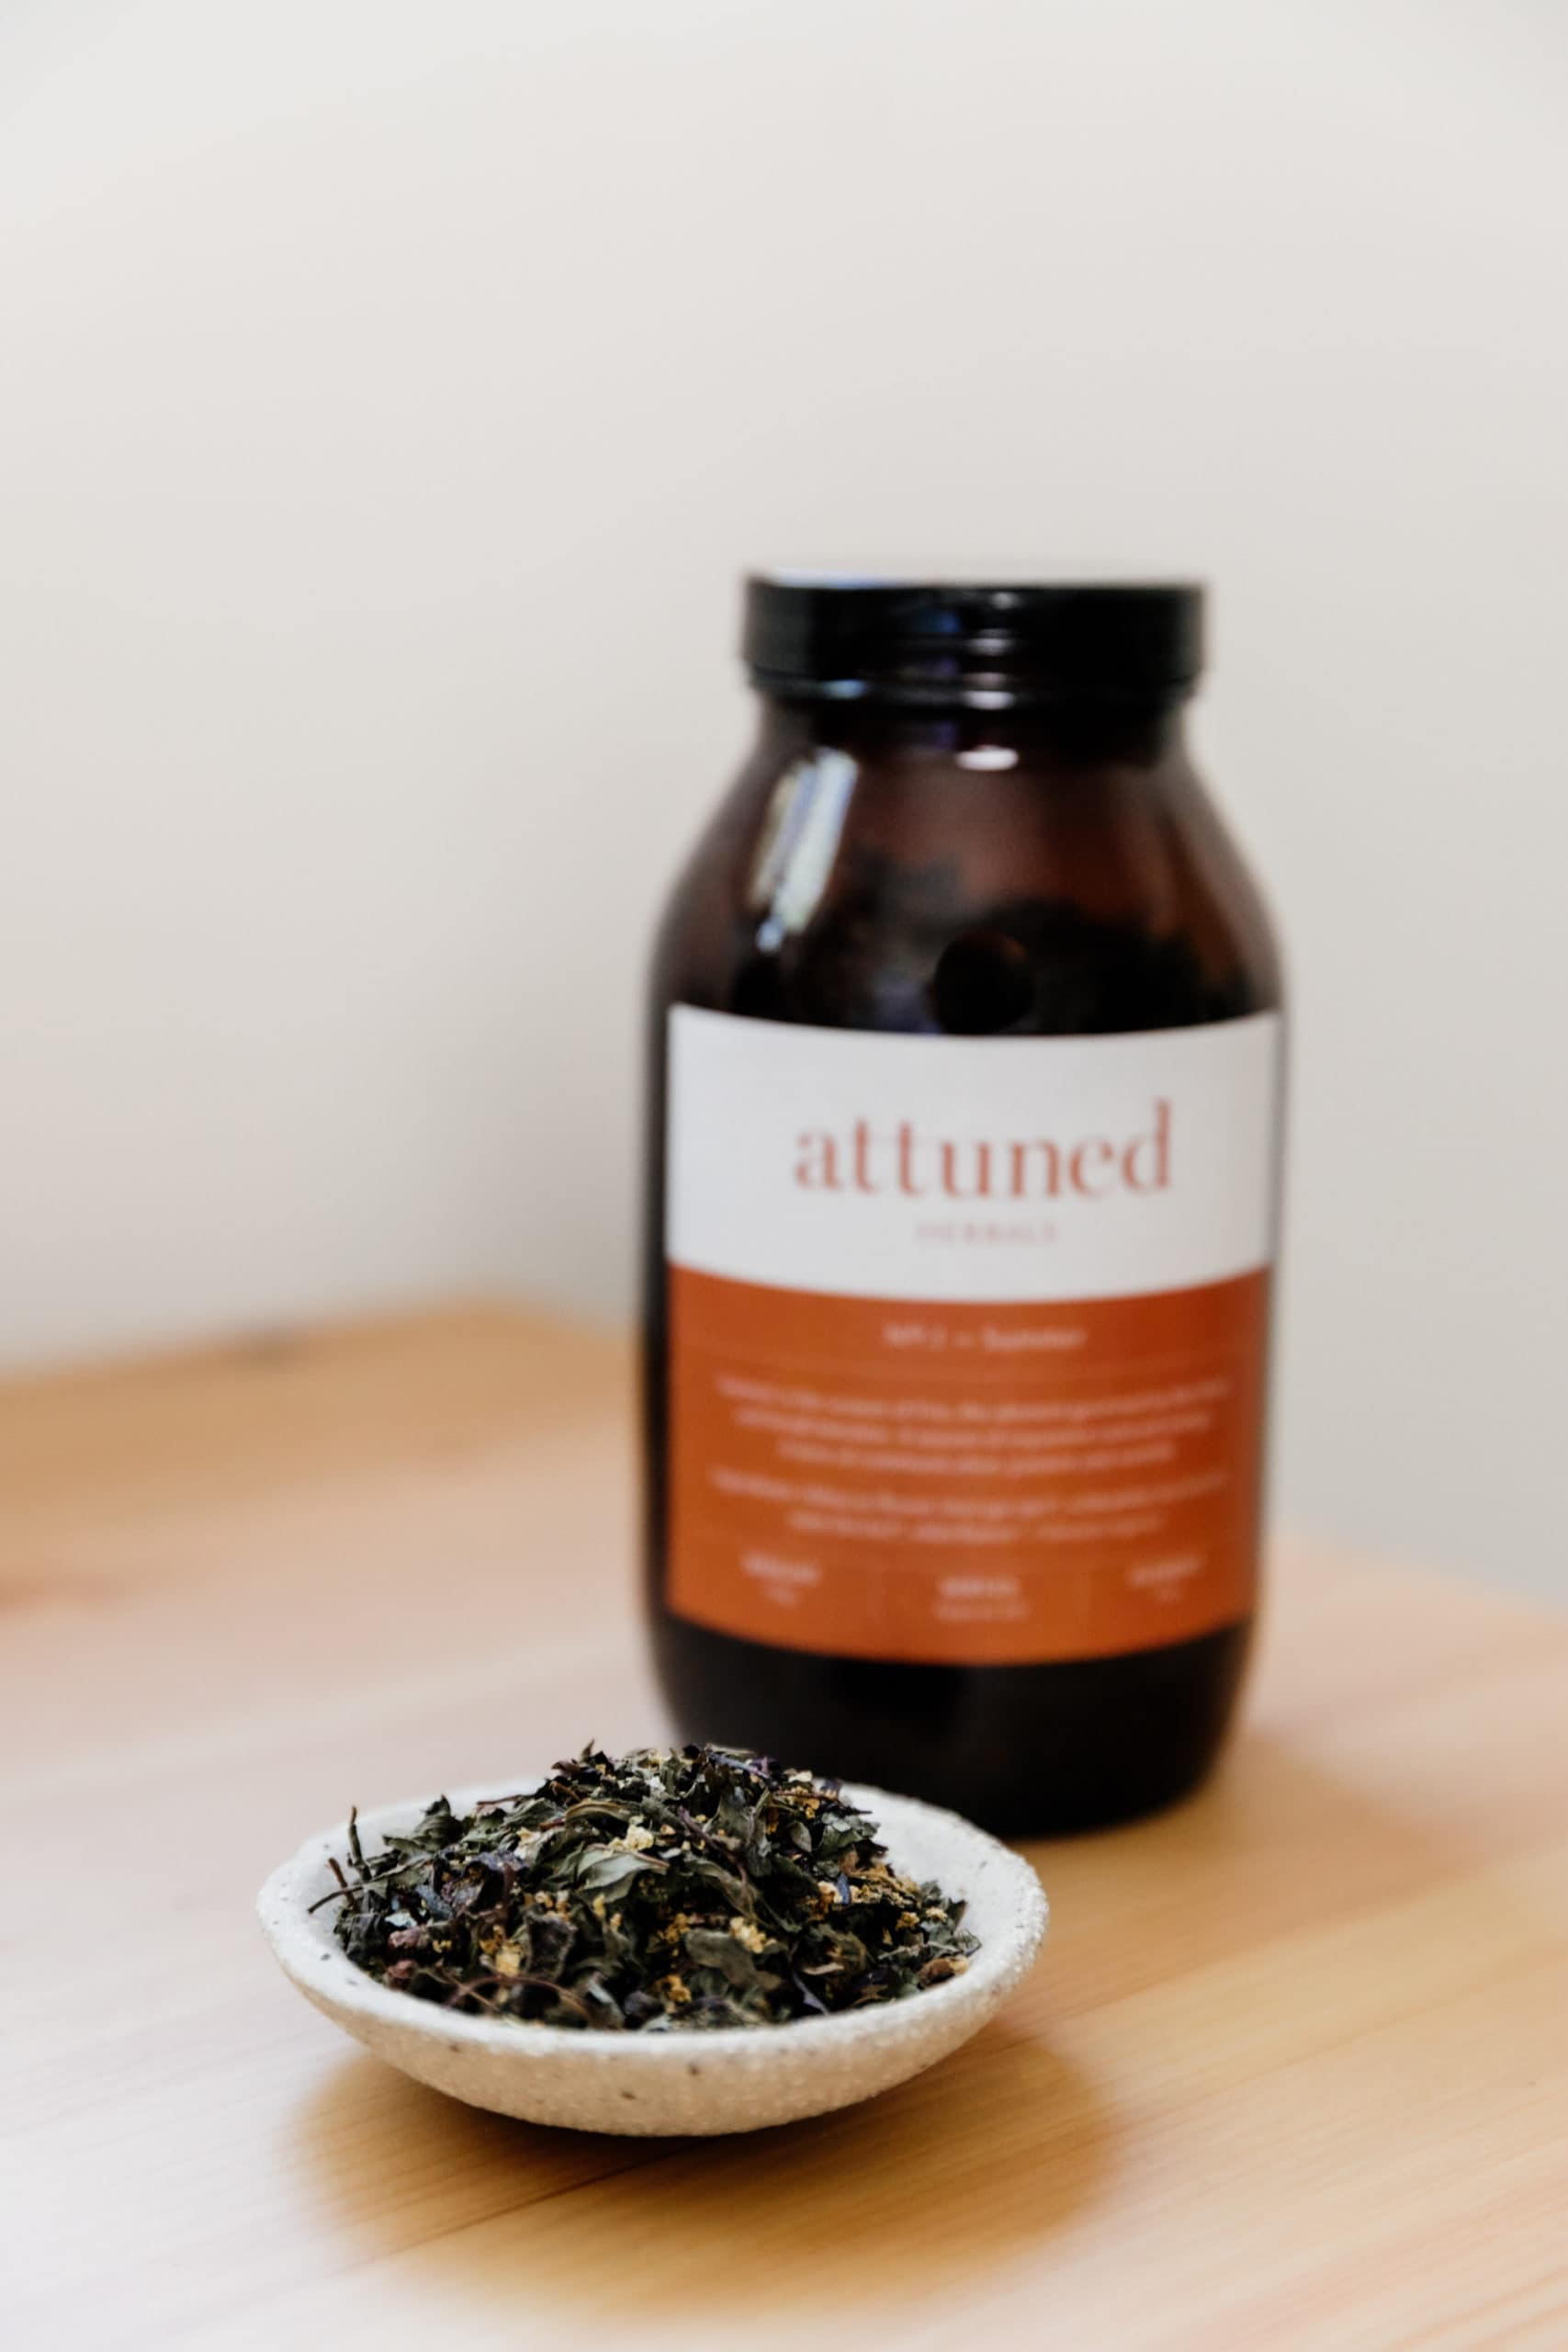 Attuned Herbals Brand Imagery 4